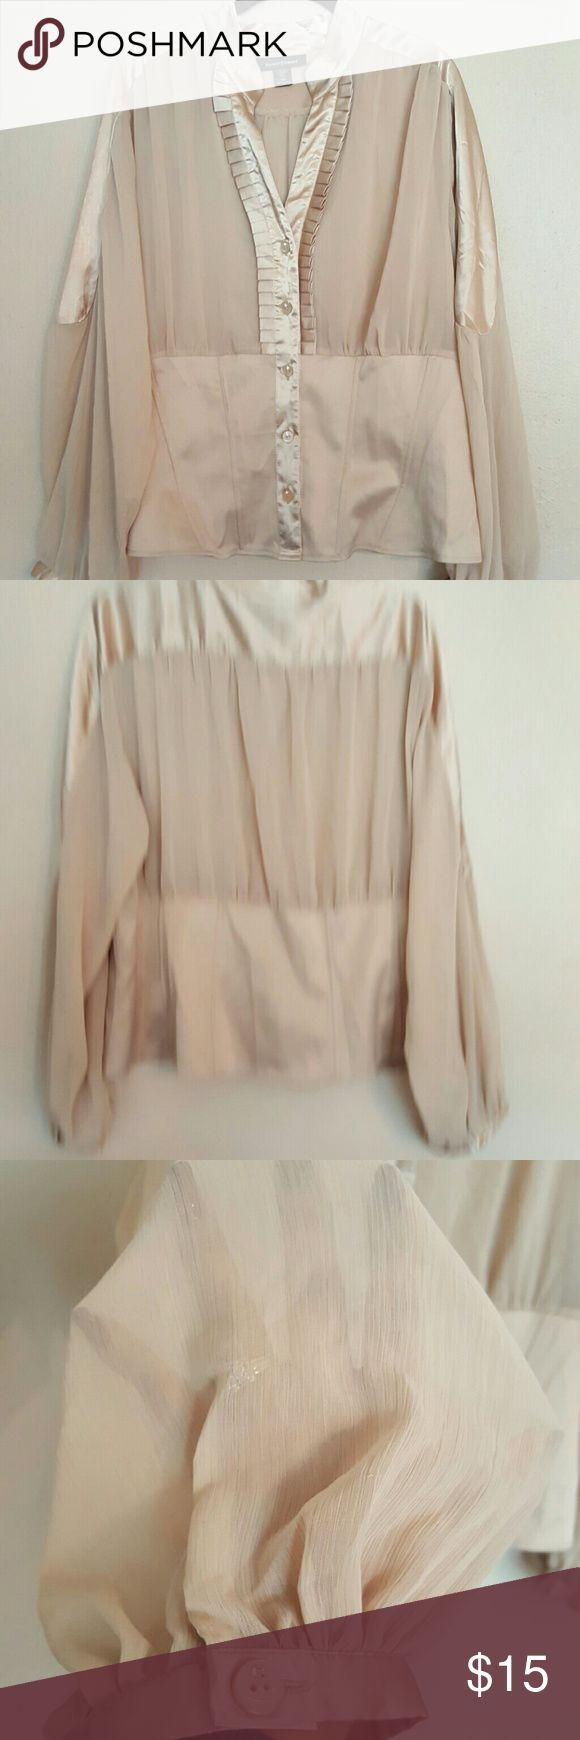 Ashley Stewart blouse Ashley Stewart cream colored blouse. Top is made of satin-like material, middle and sleeves are see through, bottom is made of girdle like material. Buttons have a cute little rhinestone on them.   Very Cute!! Ashley Stewart Tops Blouses